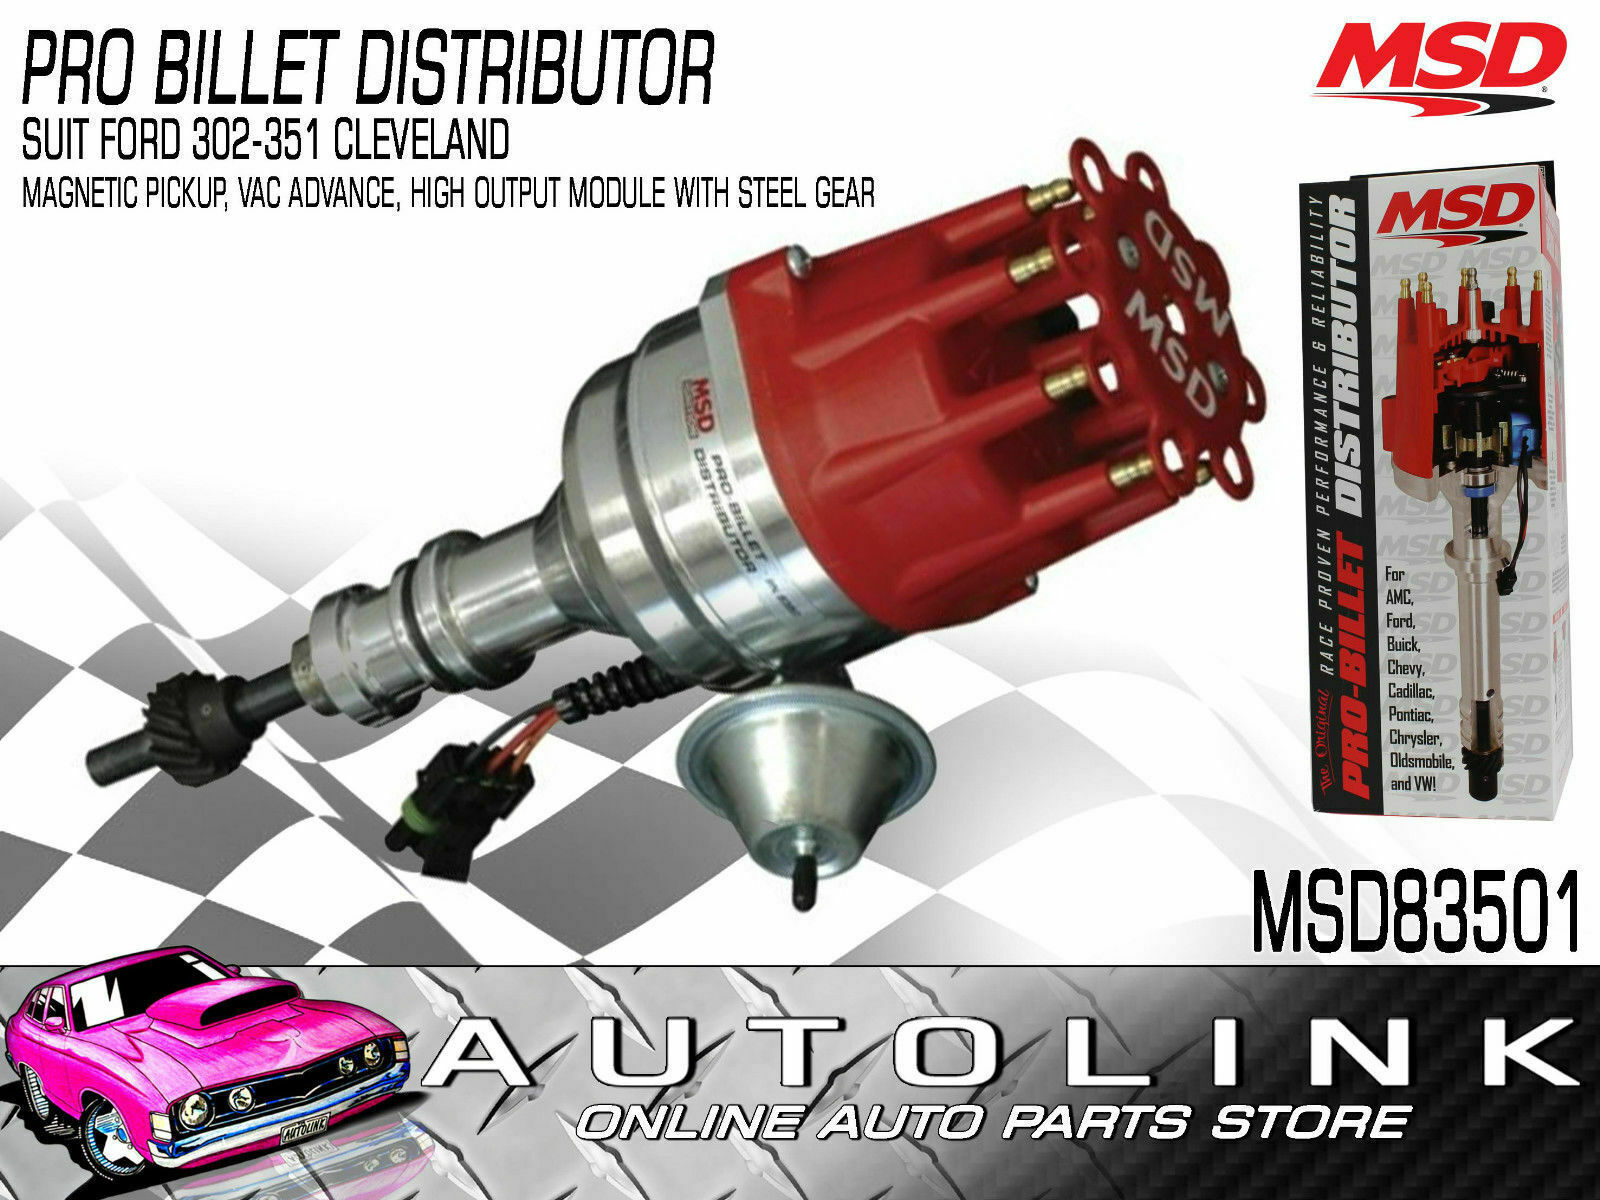 Msd Pro Billet Ready To Run Distributor Ford 302 351ci Cleveland 460 Wiring 1 Of 11 See More